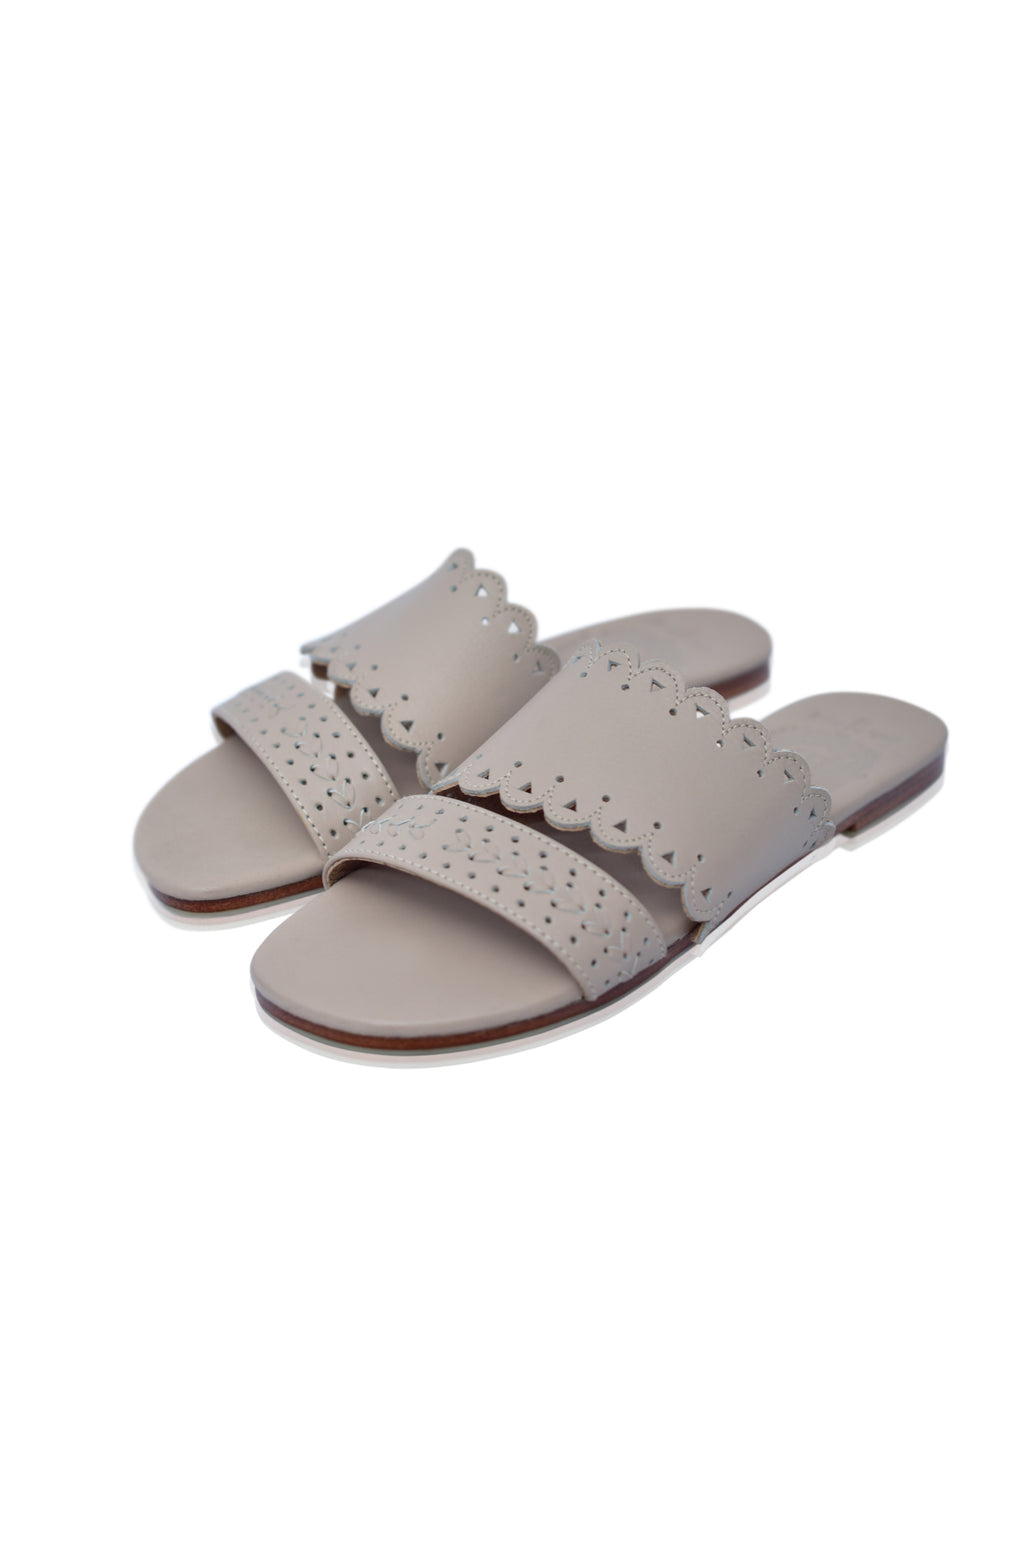 Palm Valley Slide Sandals (Sale)